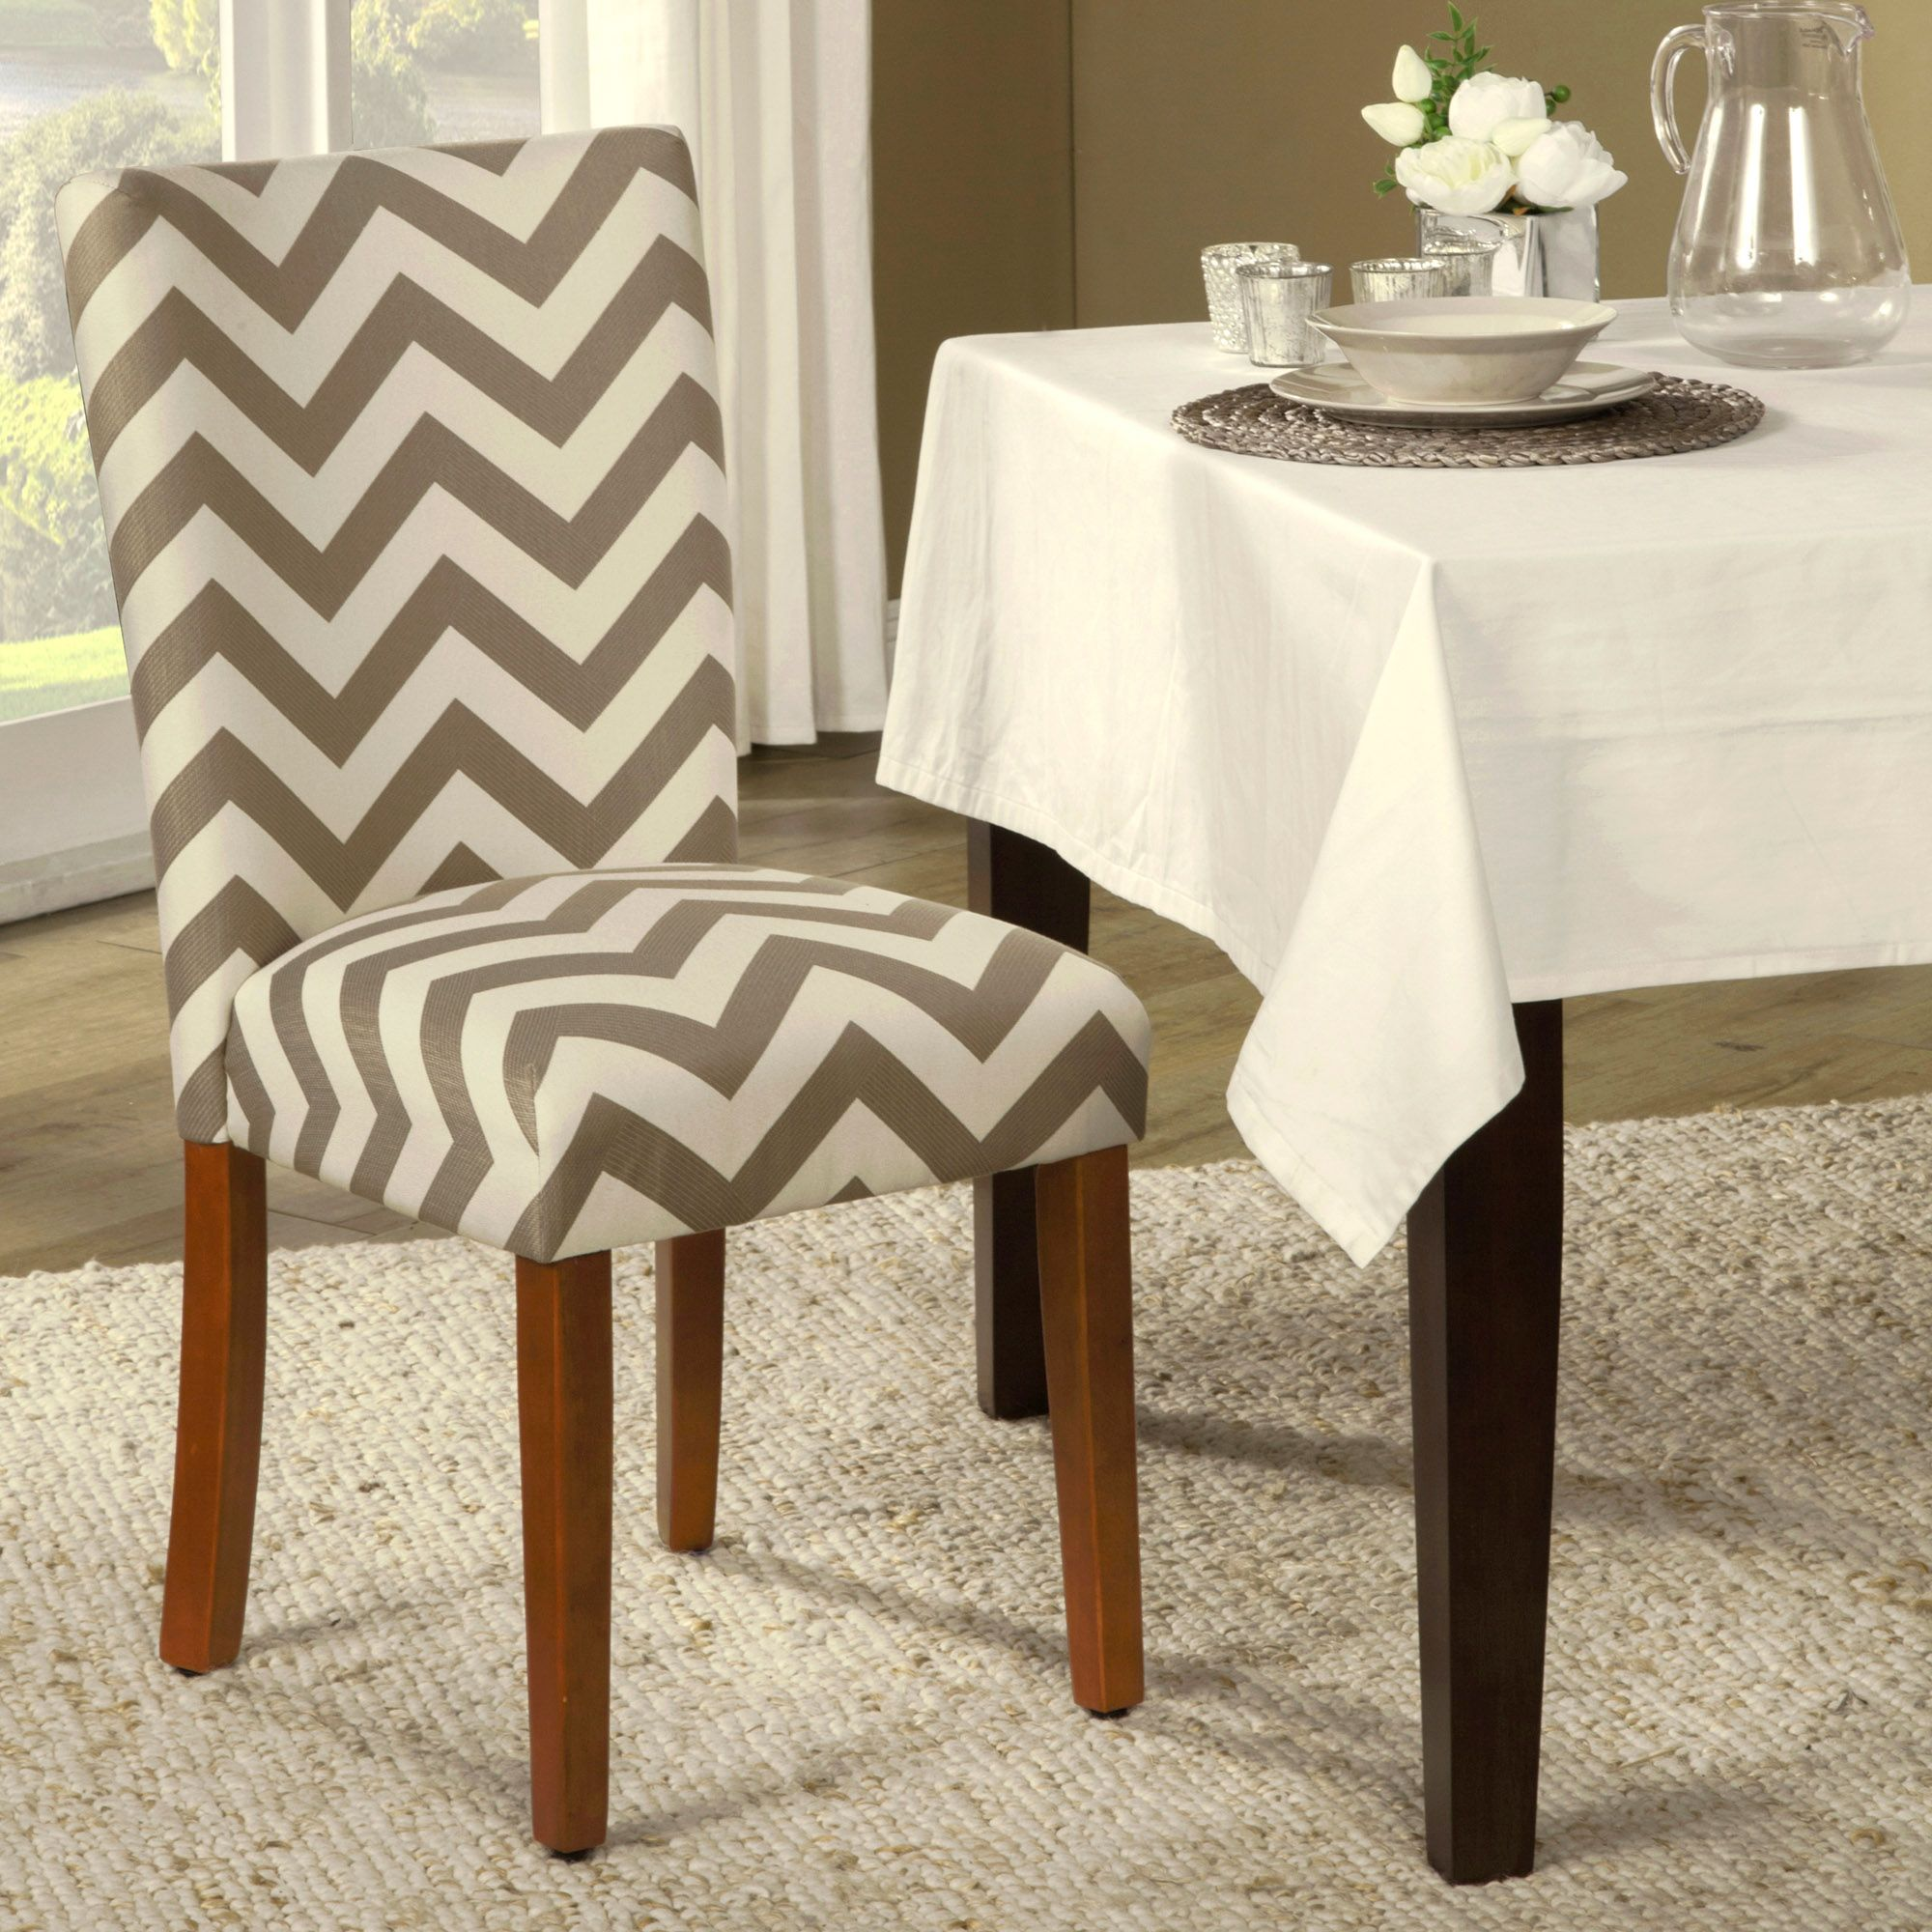 Traditional Parsons Chair Design Offered In A Modern Chevron Pattern